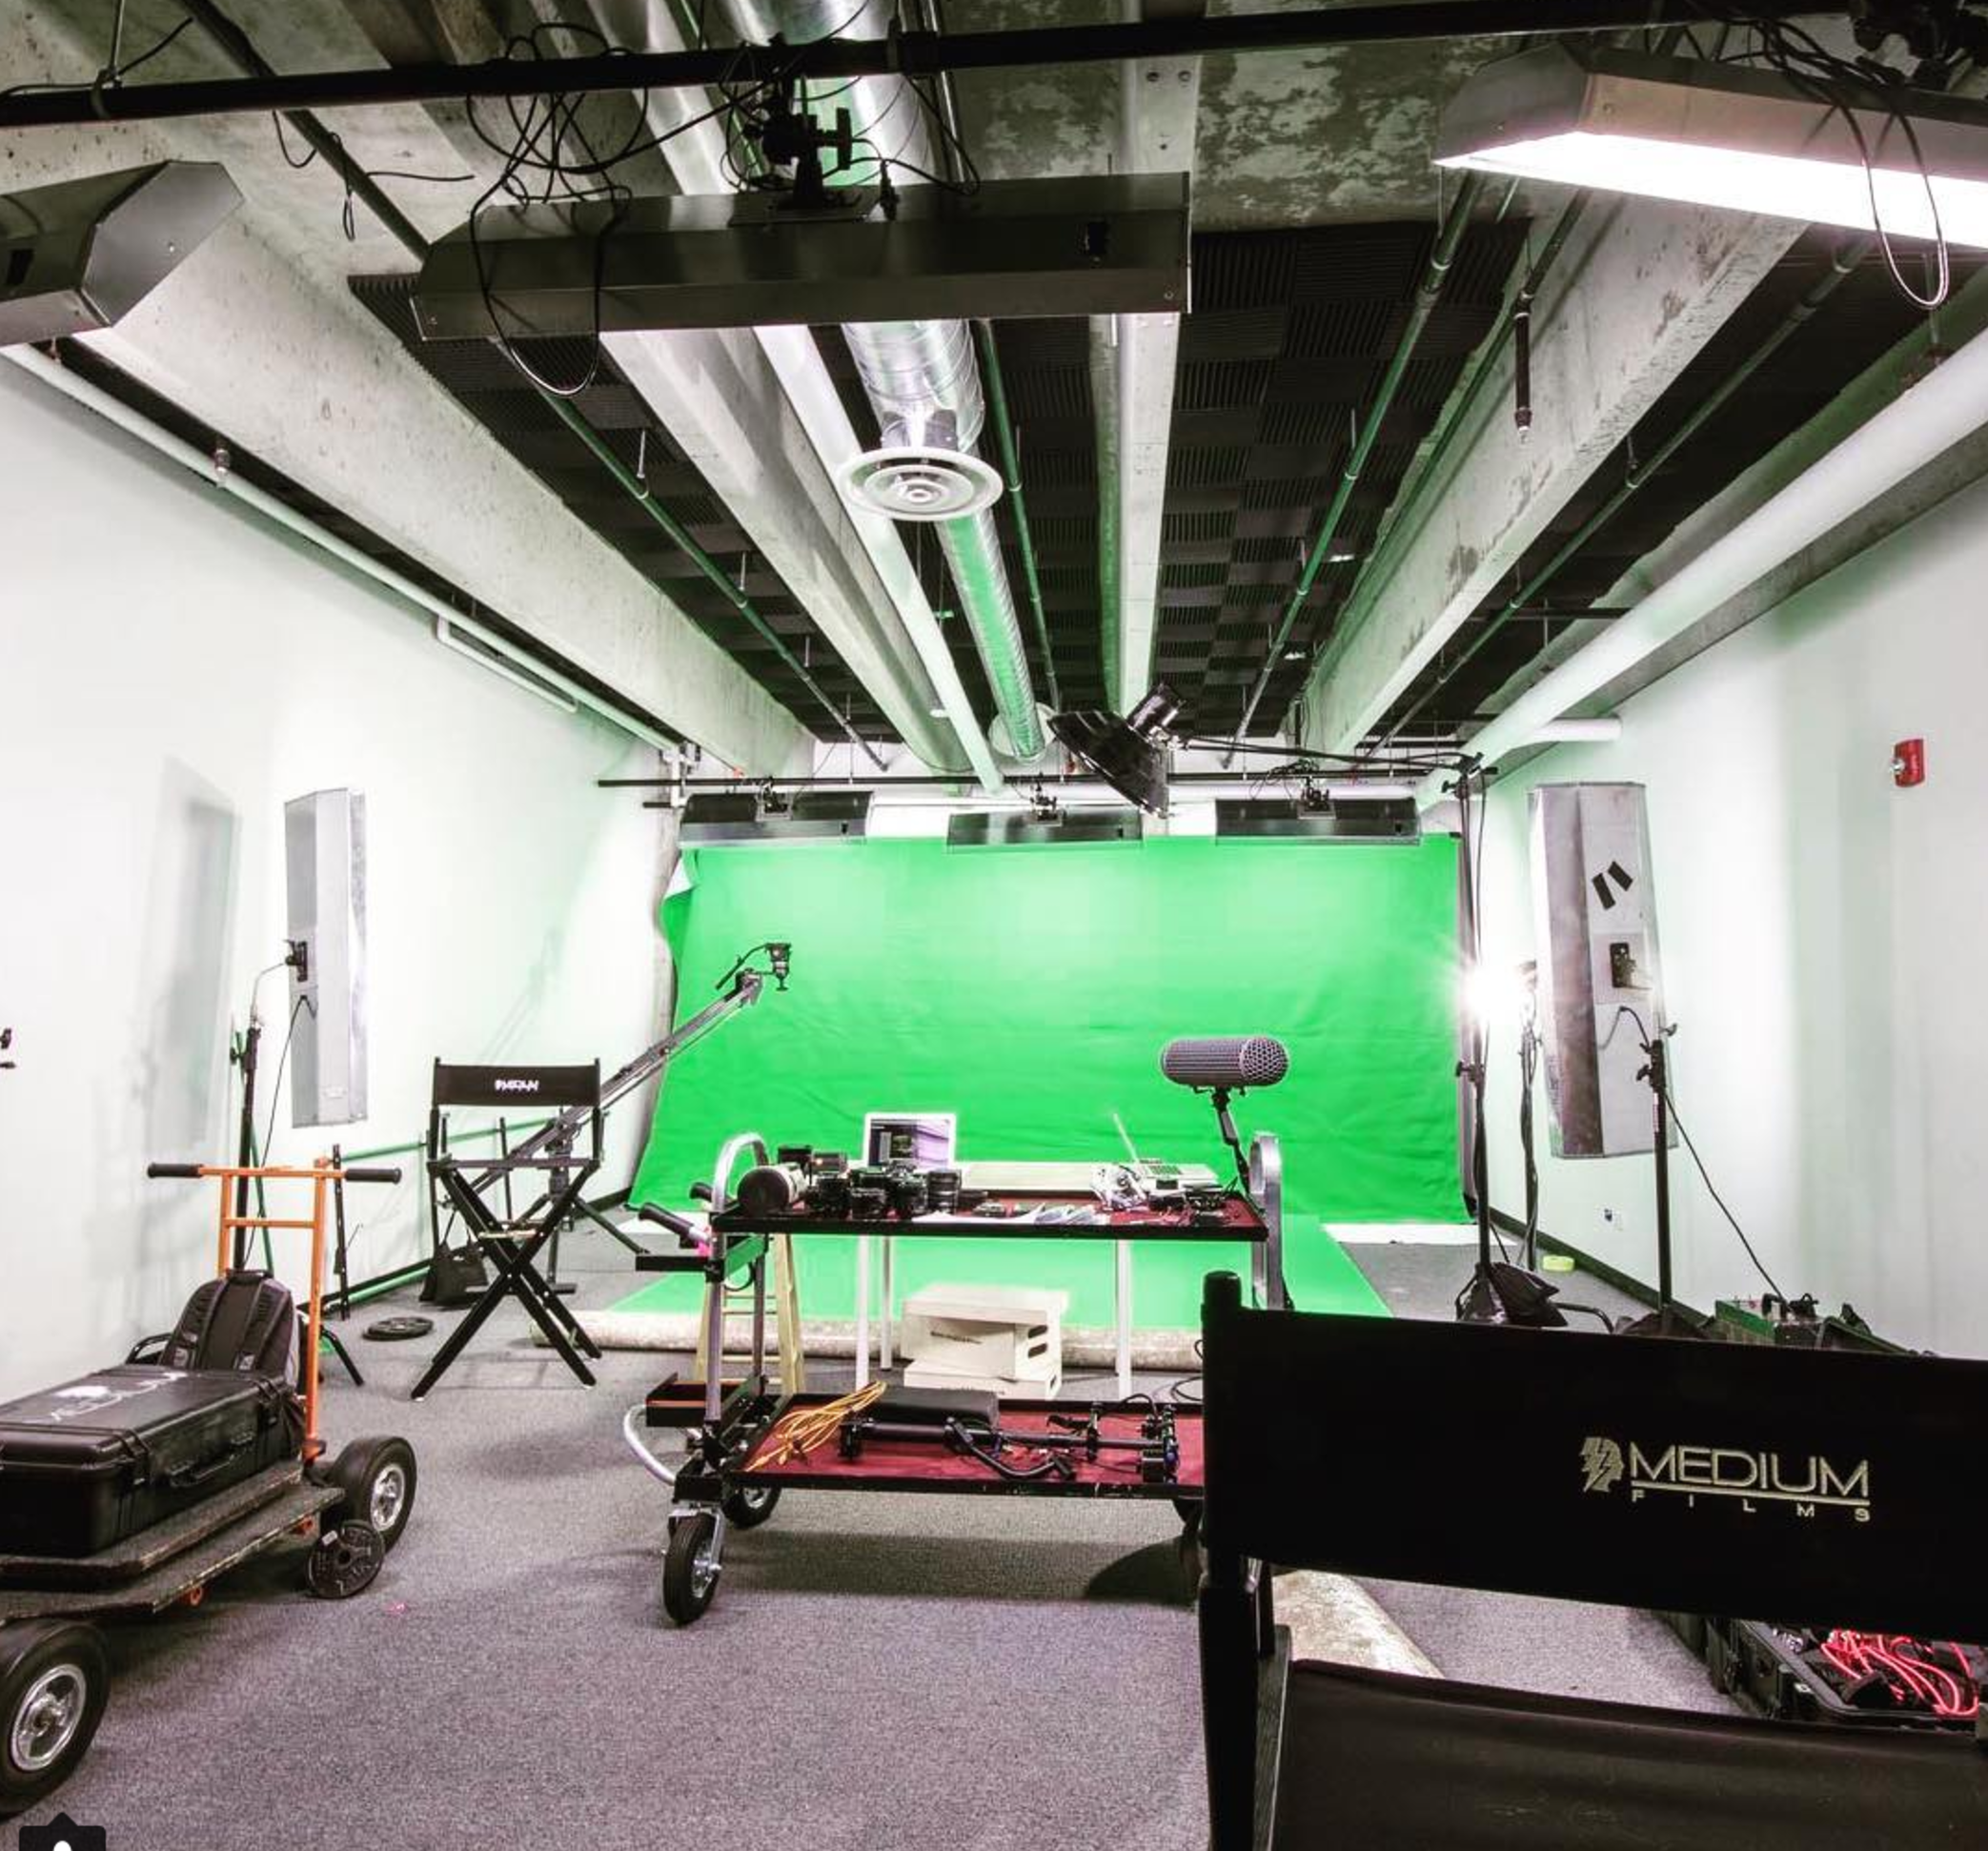 Studios For Rent: Video Film And Photography Studio For Rent Boulder, Colorado